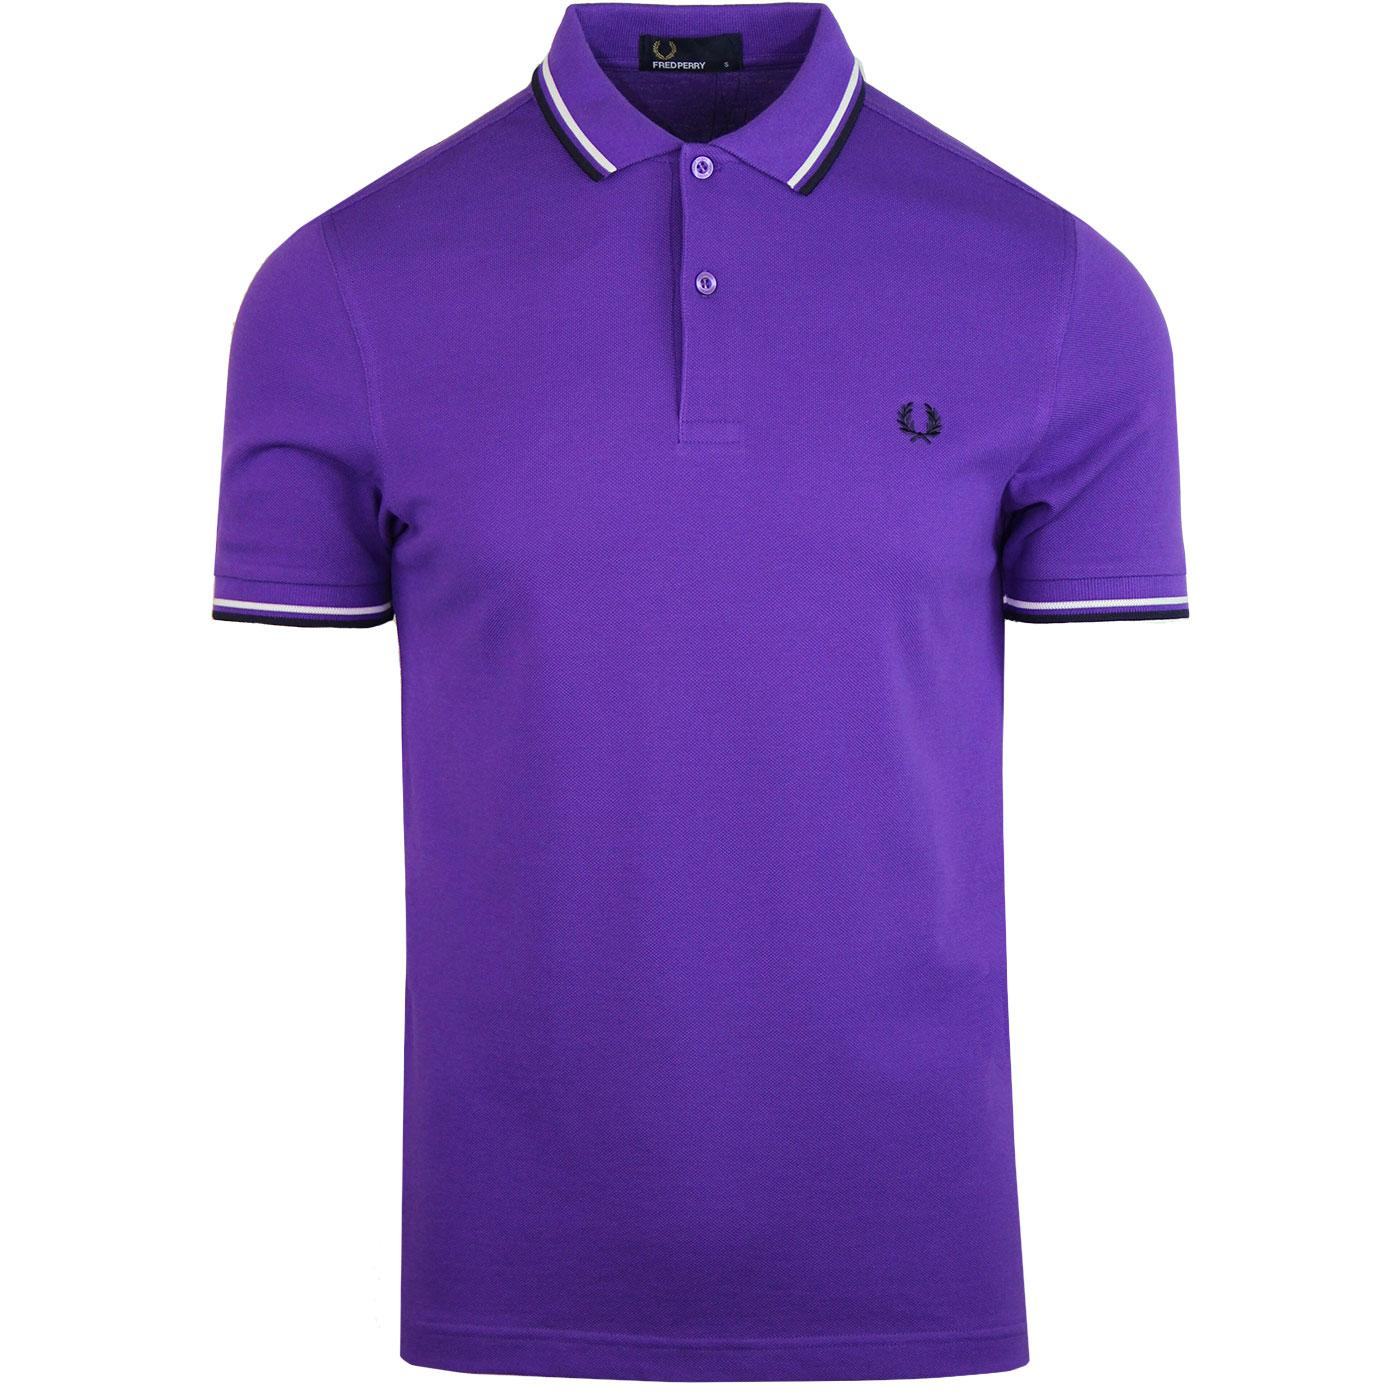 FRED PERRY M3600 Mod Twin Tipped Polo Shirt PURPLE